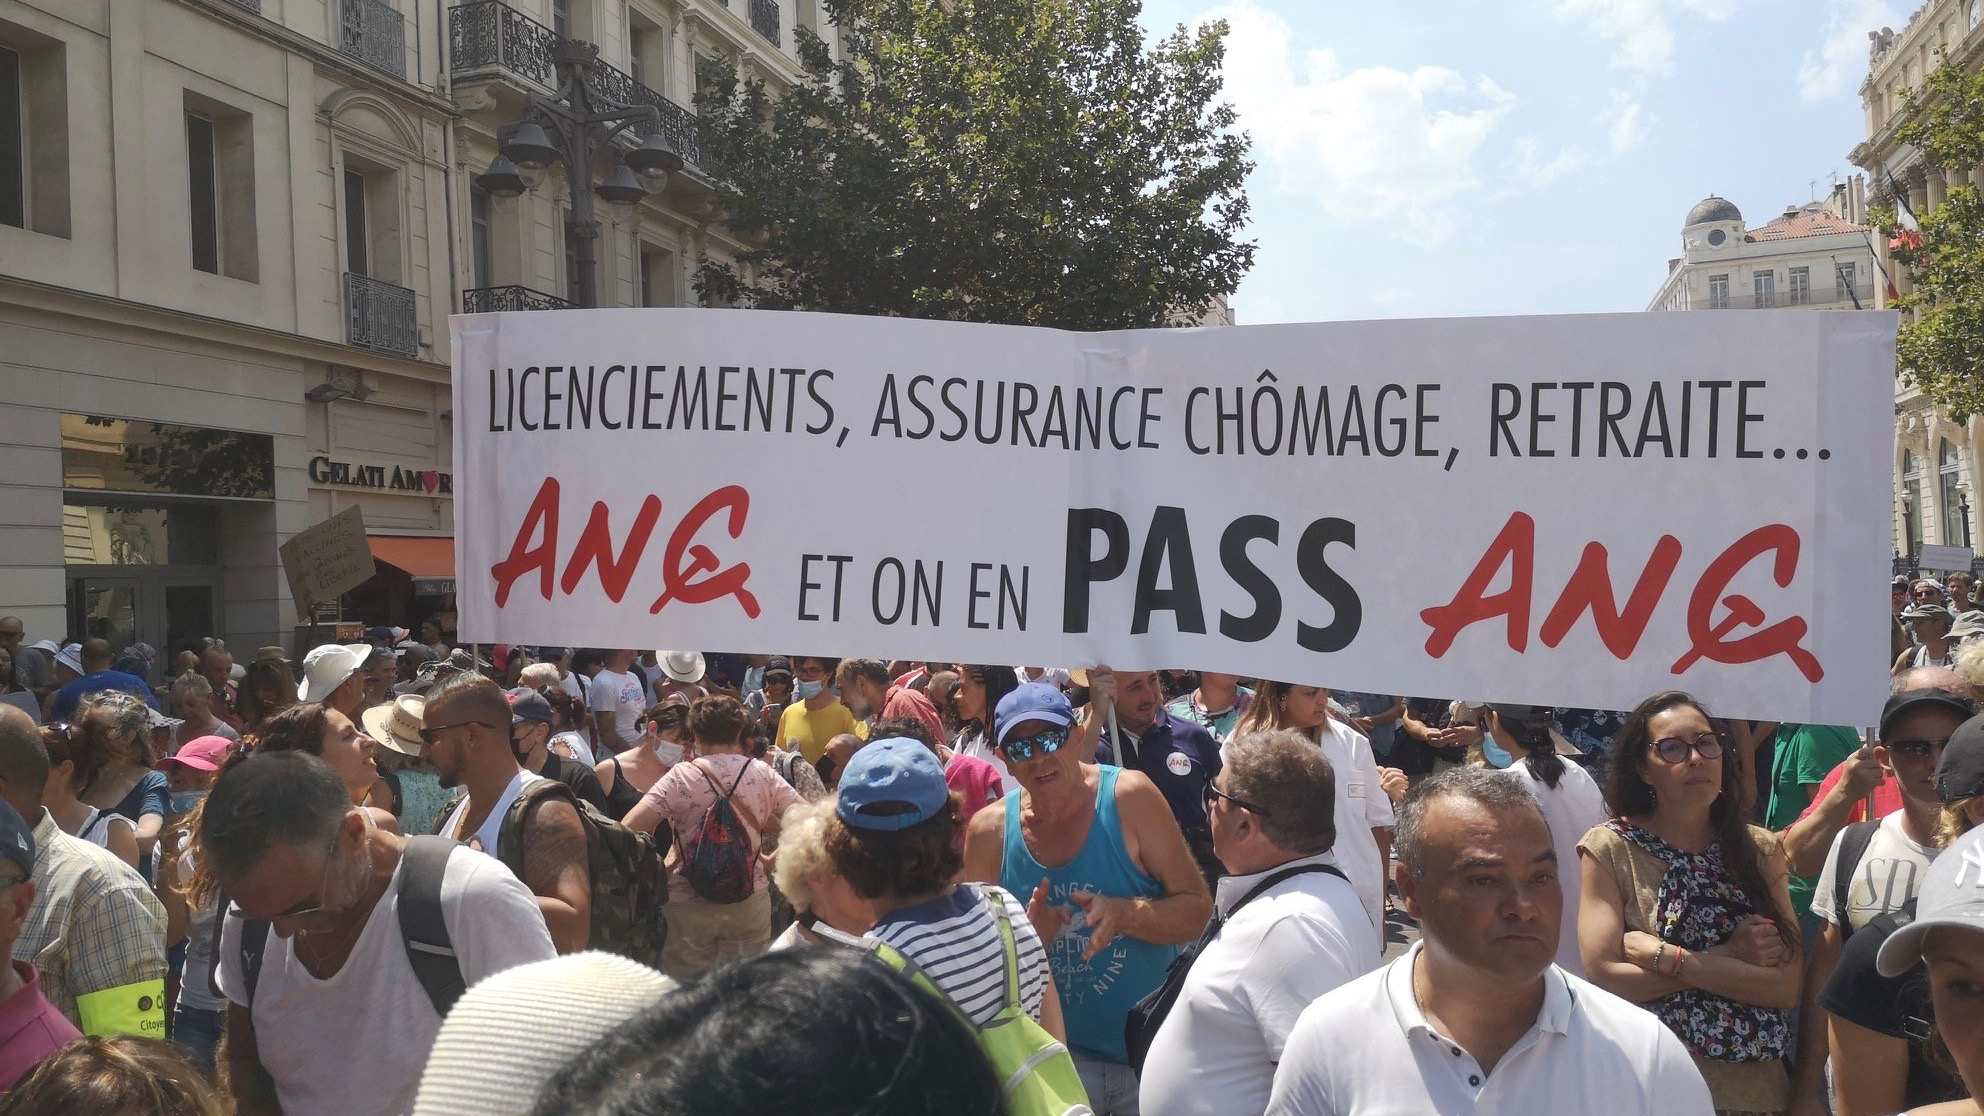 Protests against new COVID regulations-Europe